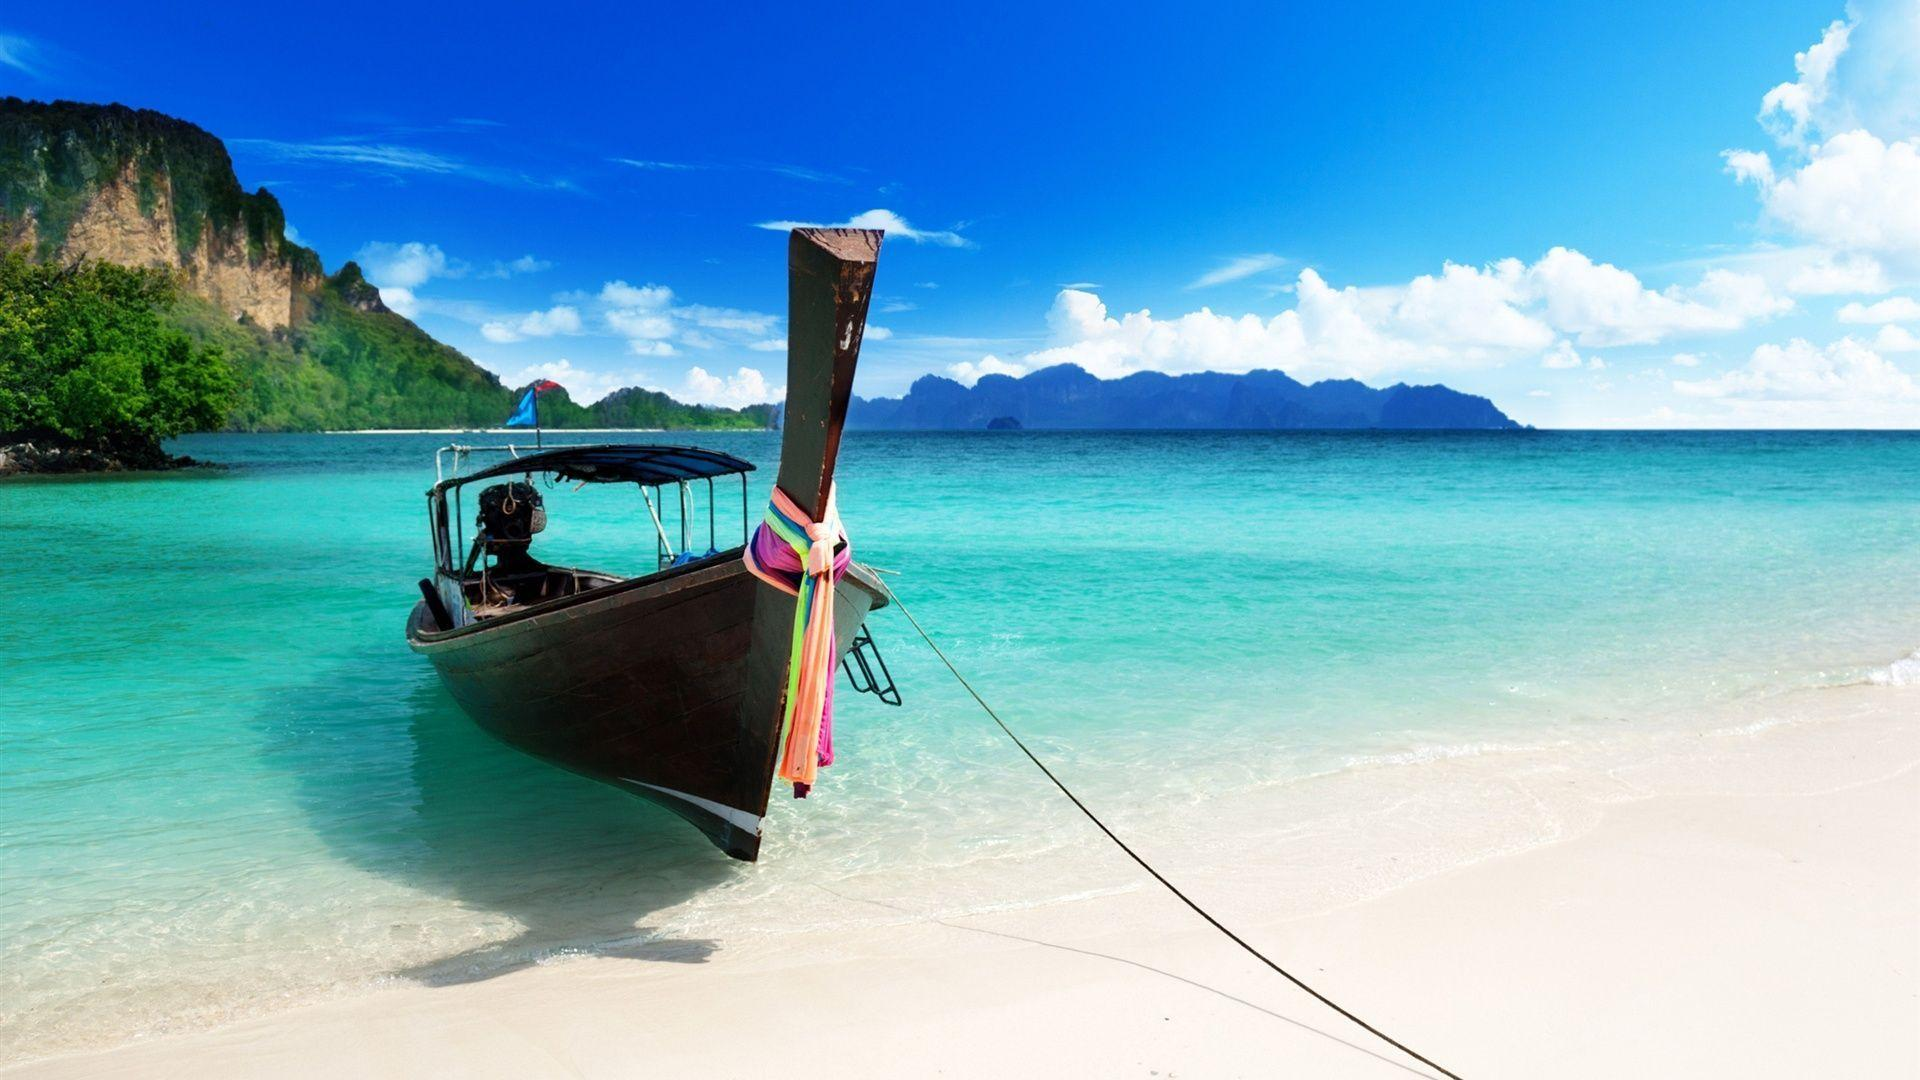 The blue beach boat Wallpapers